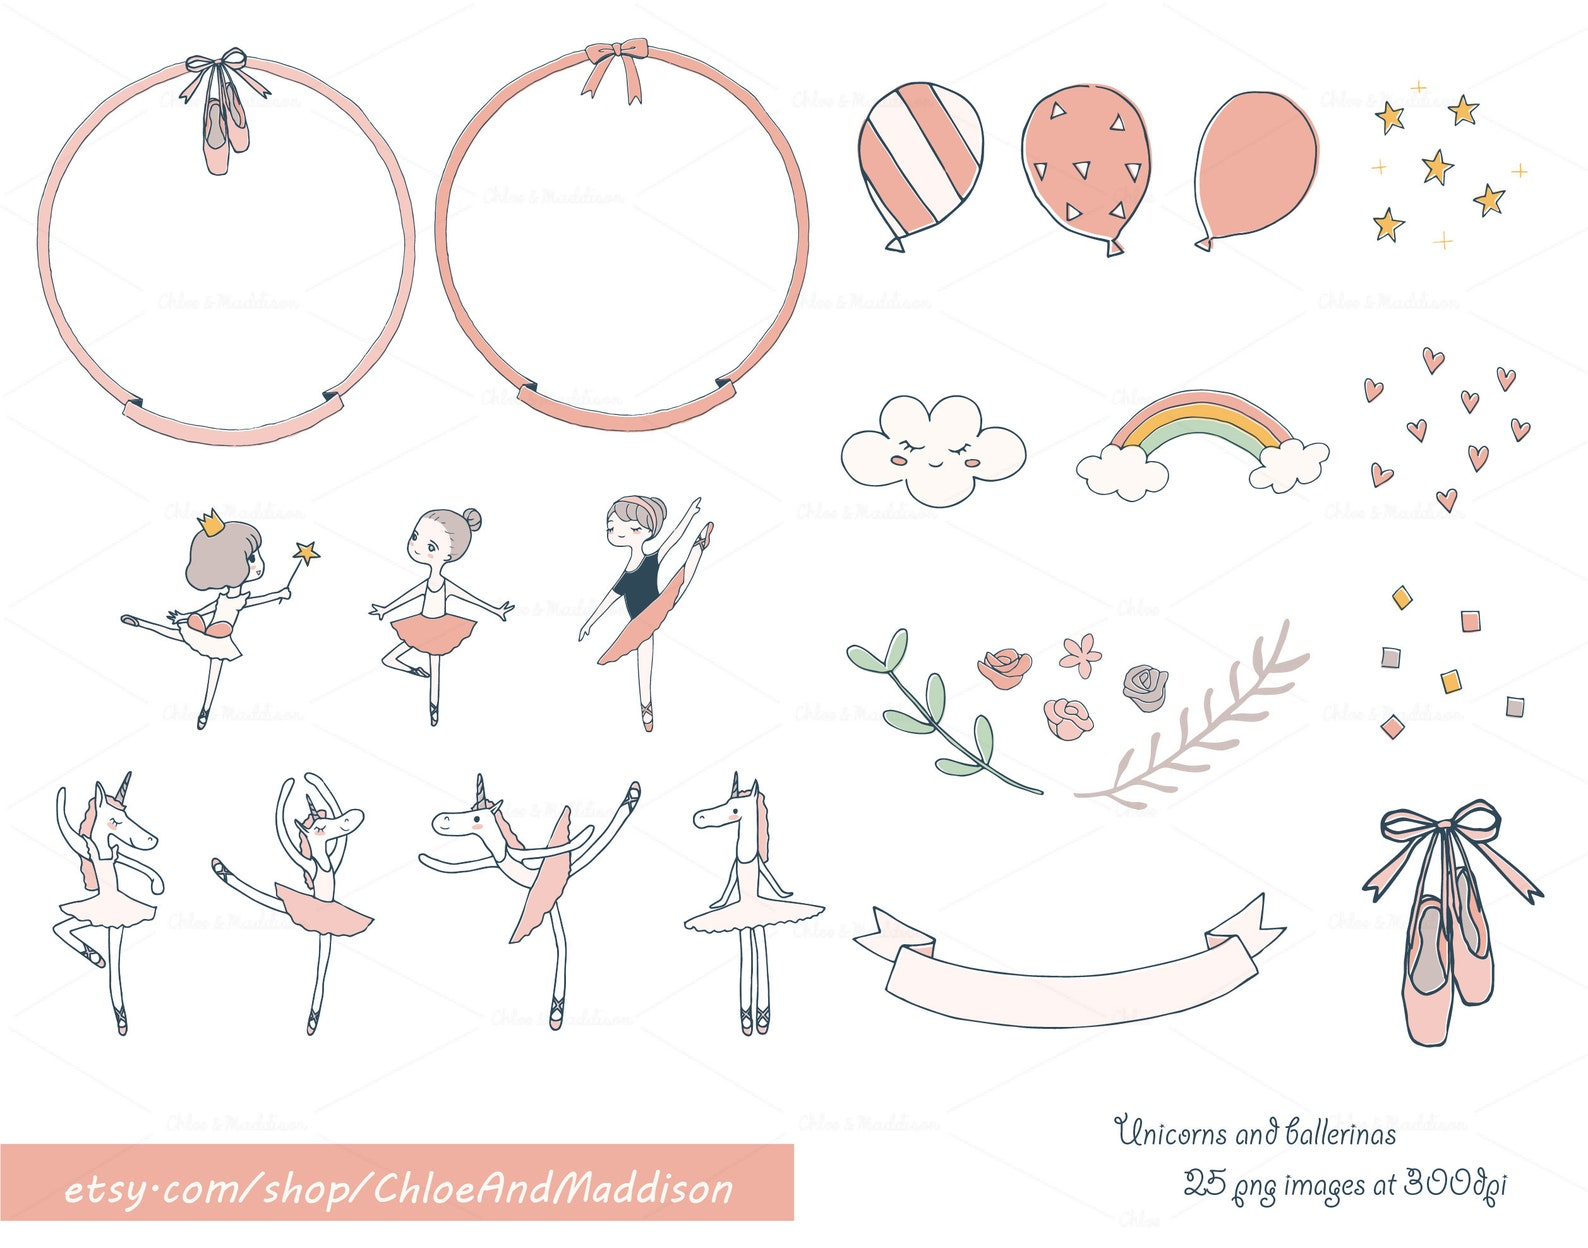 unicorn ballet party clipart | unicorns tutus ballerina vector | birthdays invites cardmaking scrapbook | 25 png 300dpi | instan